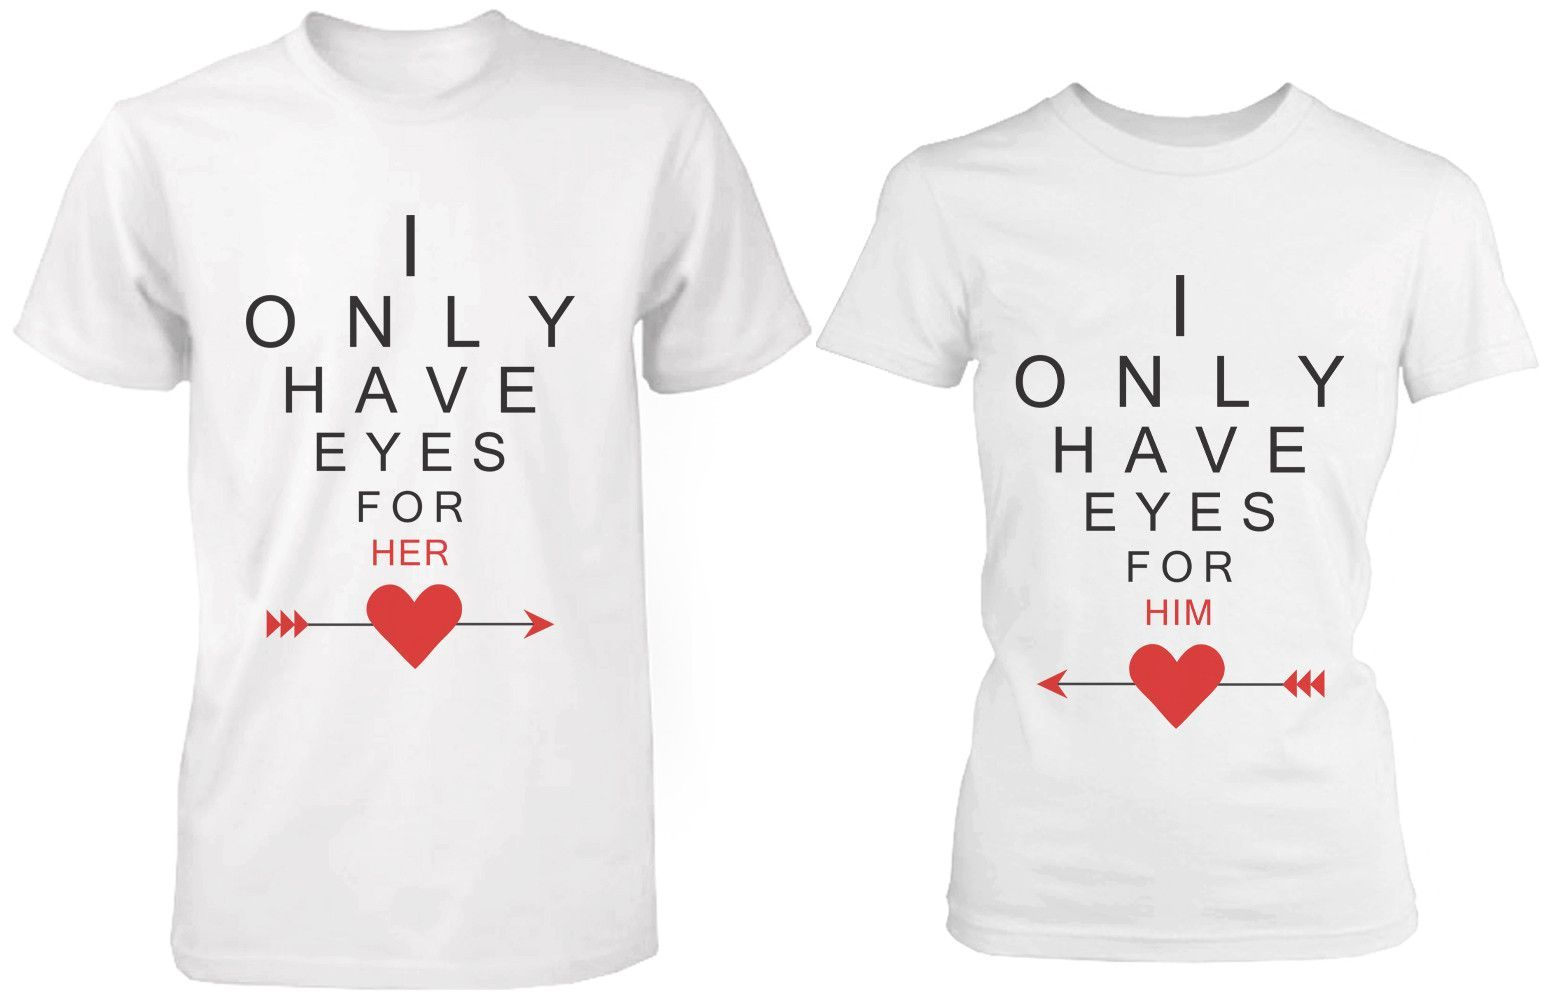 fee0ab1233a76 Cute Matching White Cotton Couple T-Shirts I Only Have Eyes for My Lov  Couple